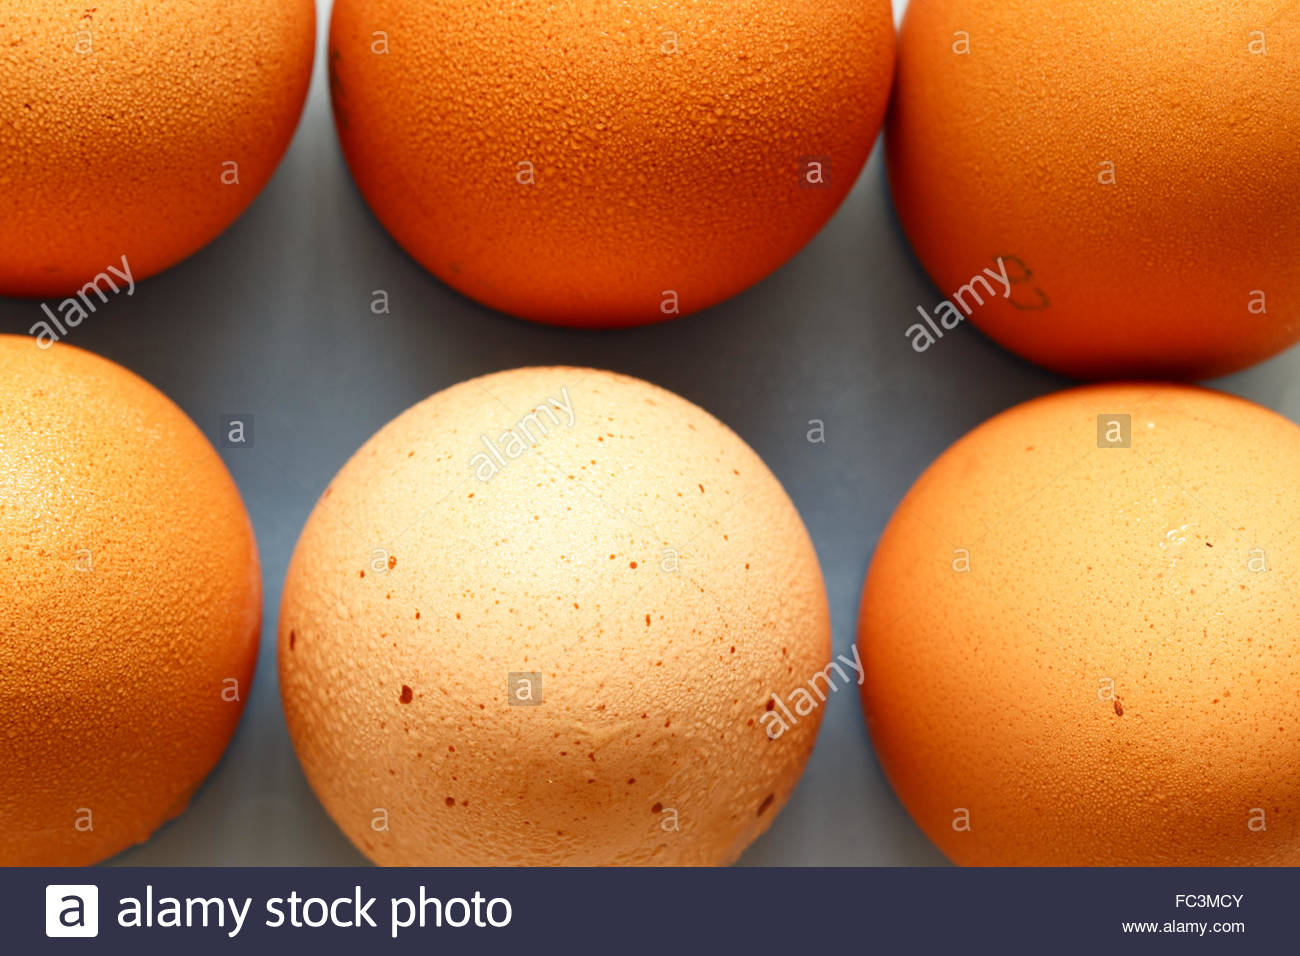 Fresh eggs - Stock Image